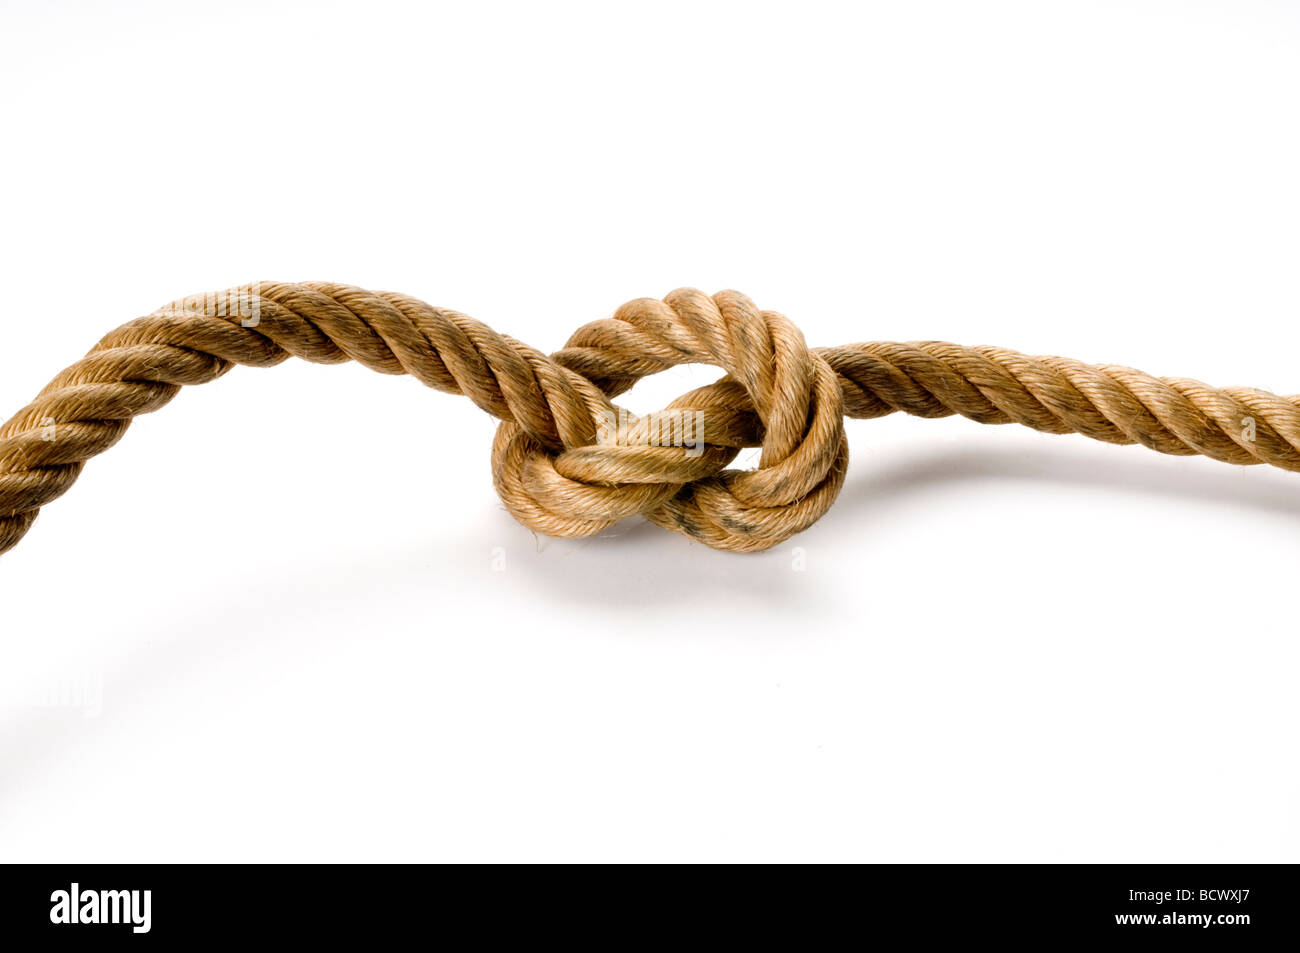 rope knot on white - Stock Image